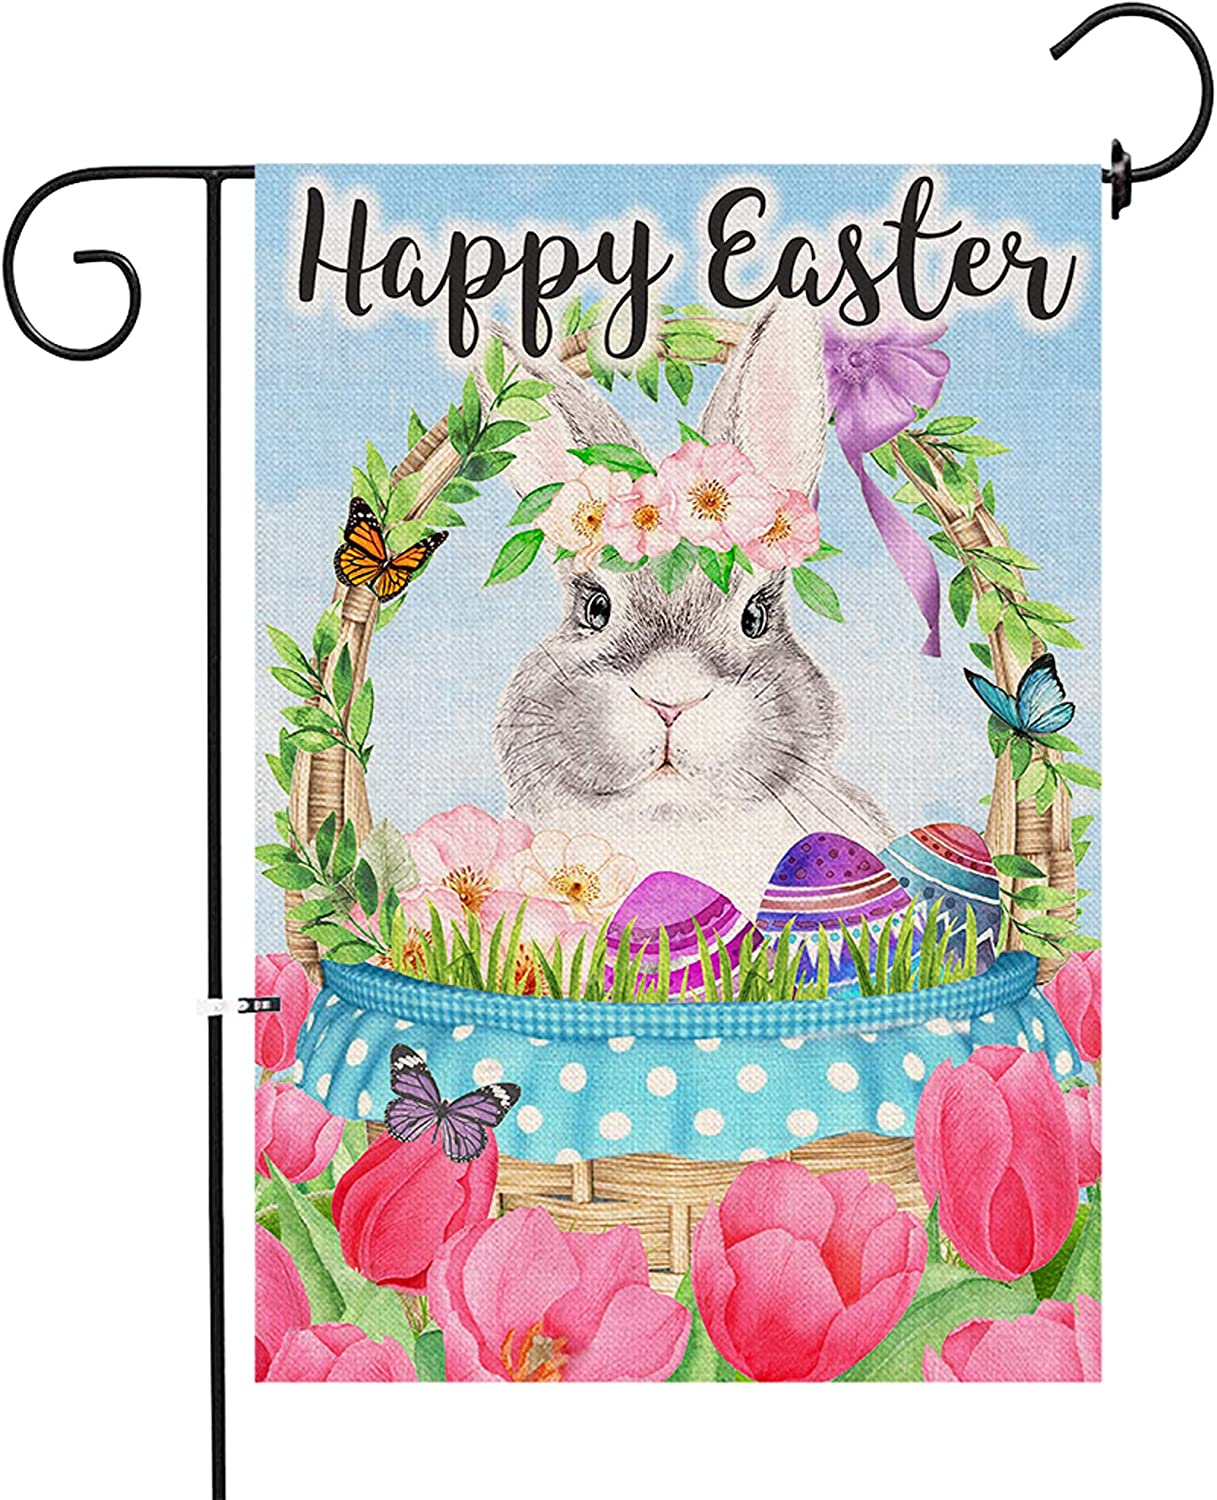 pinata Easter Garden Flag 12 x 18 Double Sided, Holiday Happy Easter Decorations for Home Small Spring Yard Flags Burlap Outside Banner Outdoor House Seasonal Bunny Eggs Rabbit Tulip Decorative Sign